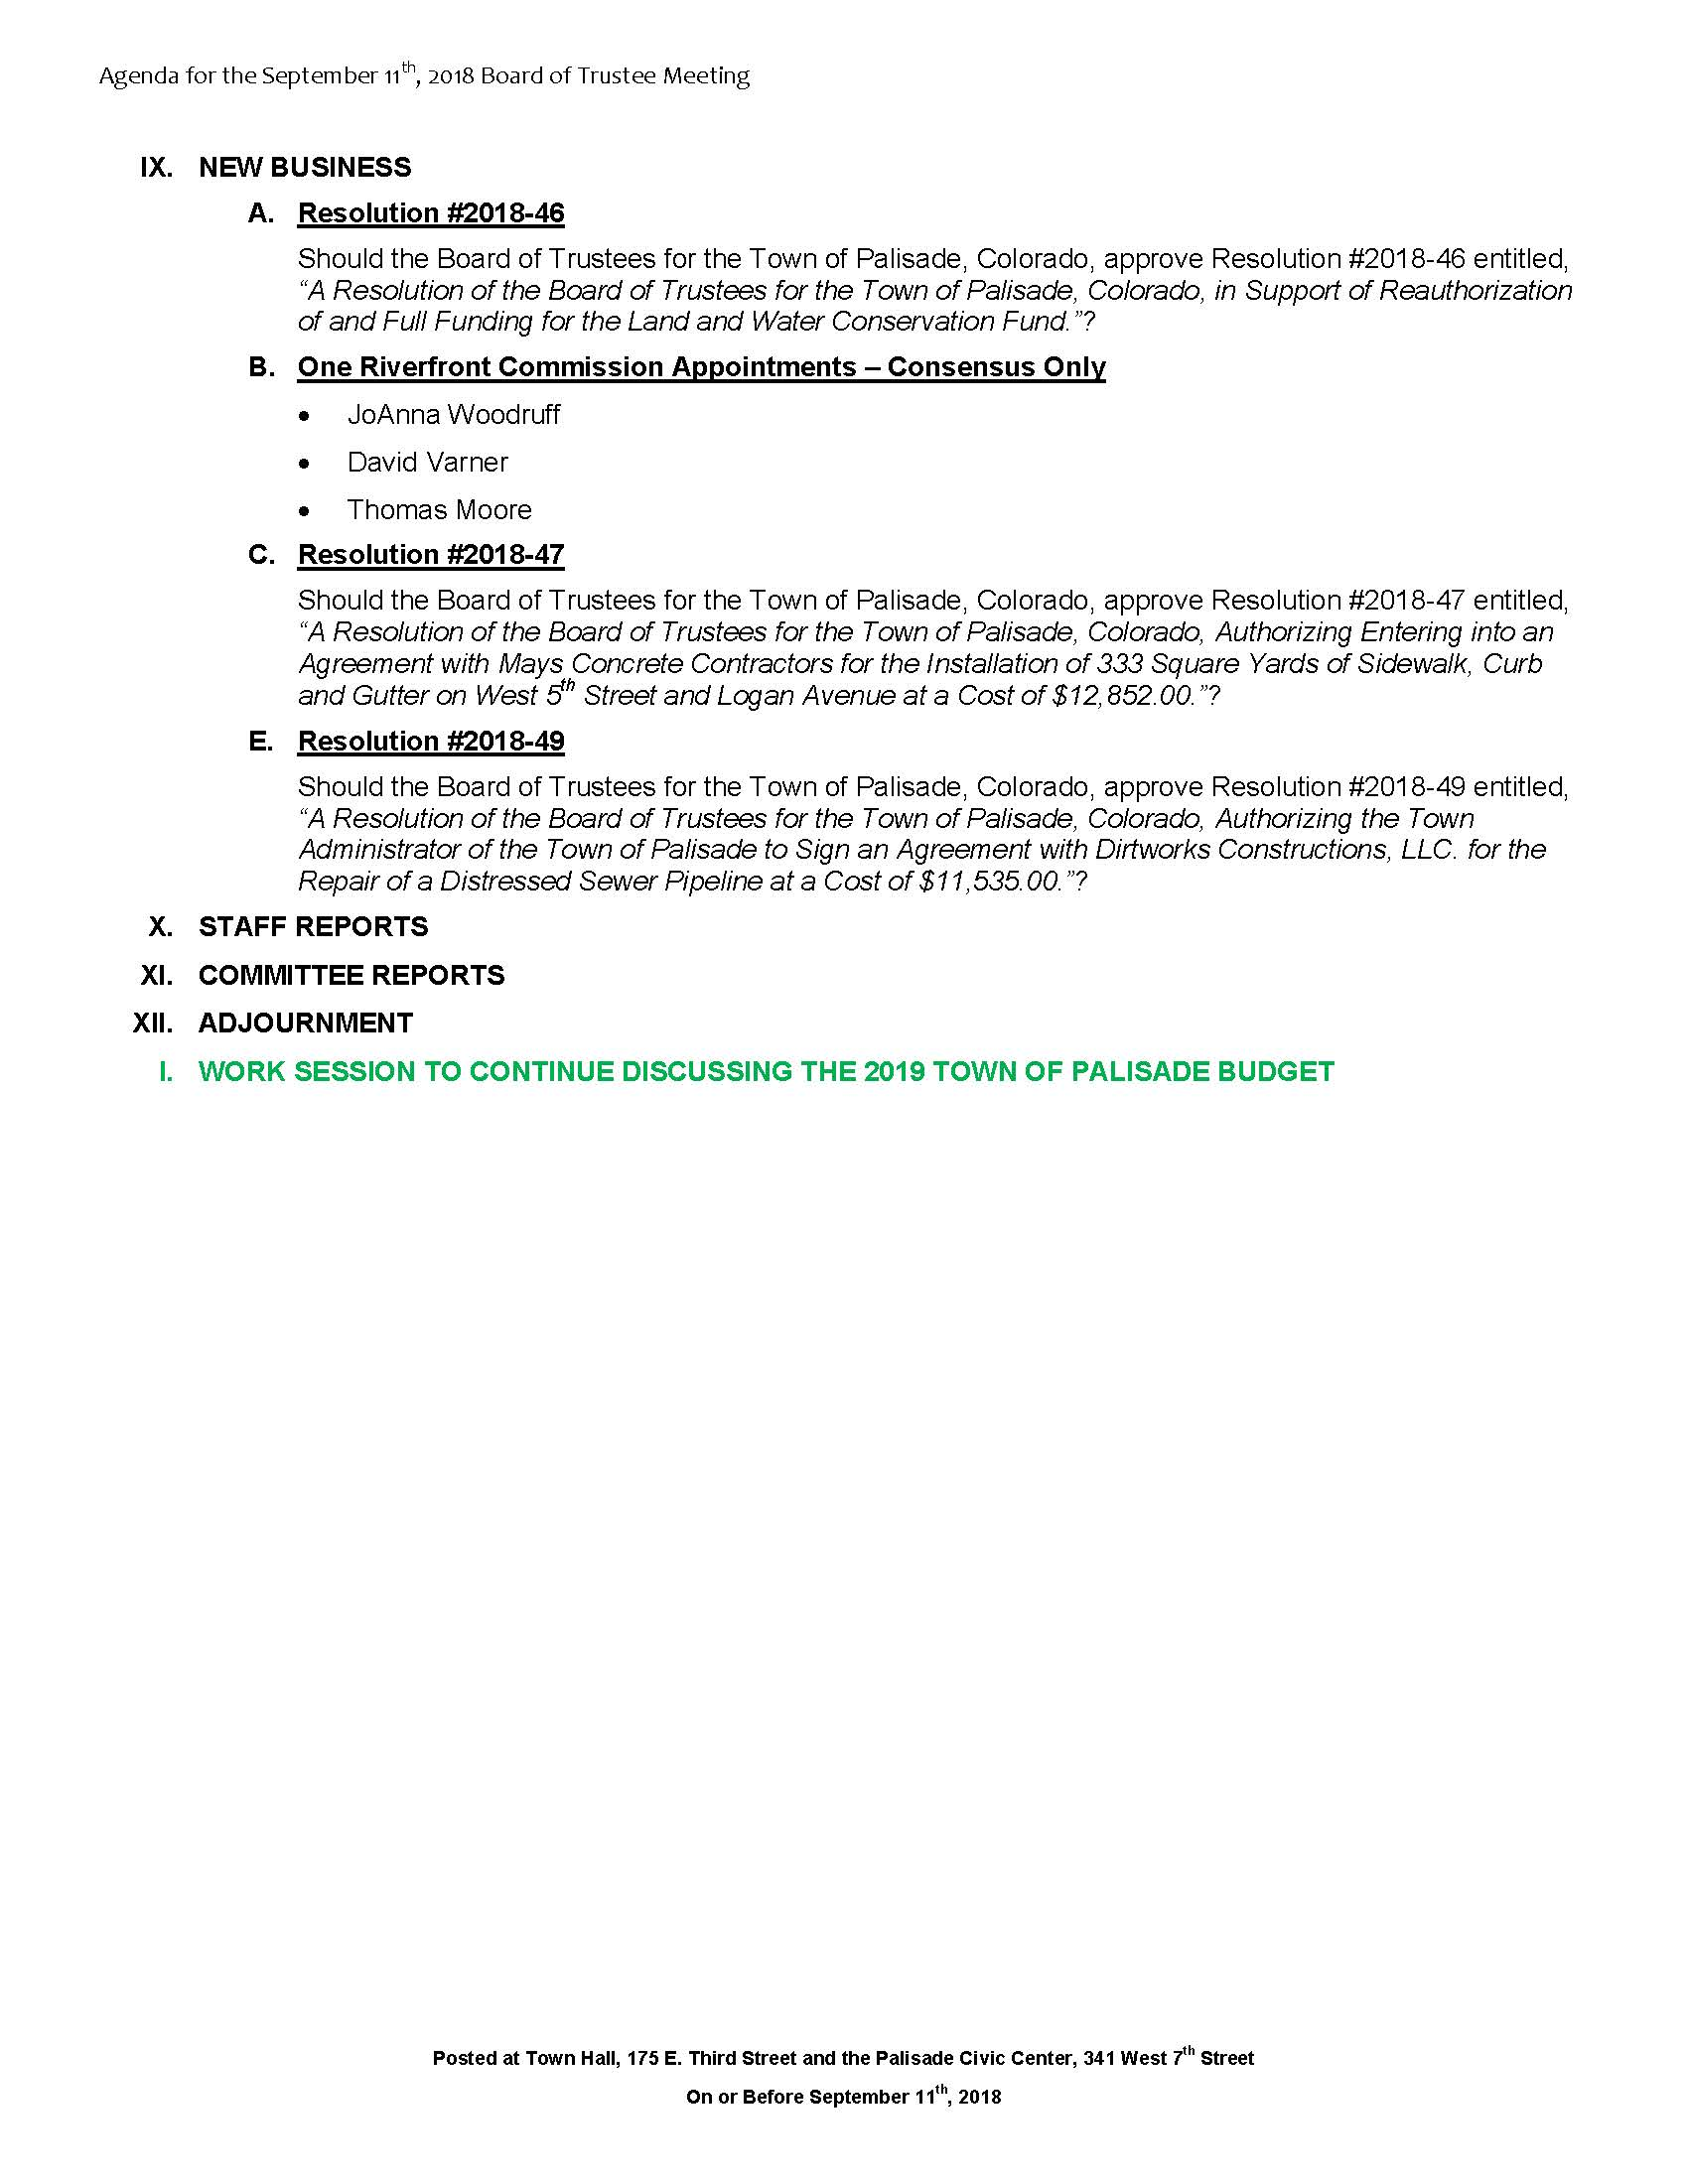 September 11th 2018 Board Meeting Agenda Page 2